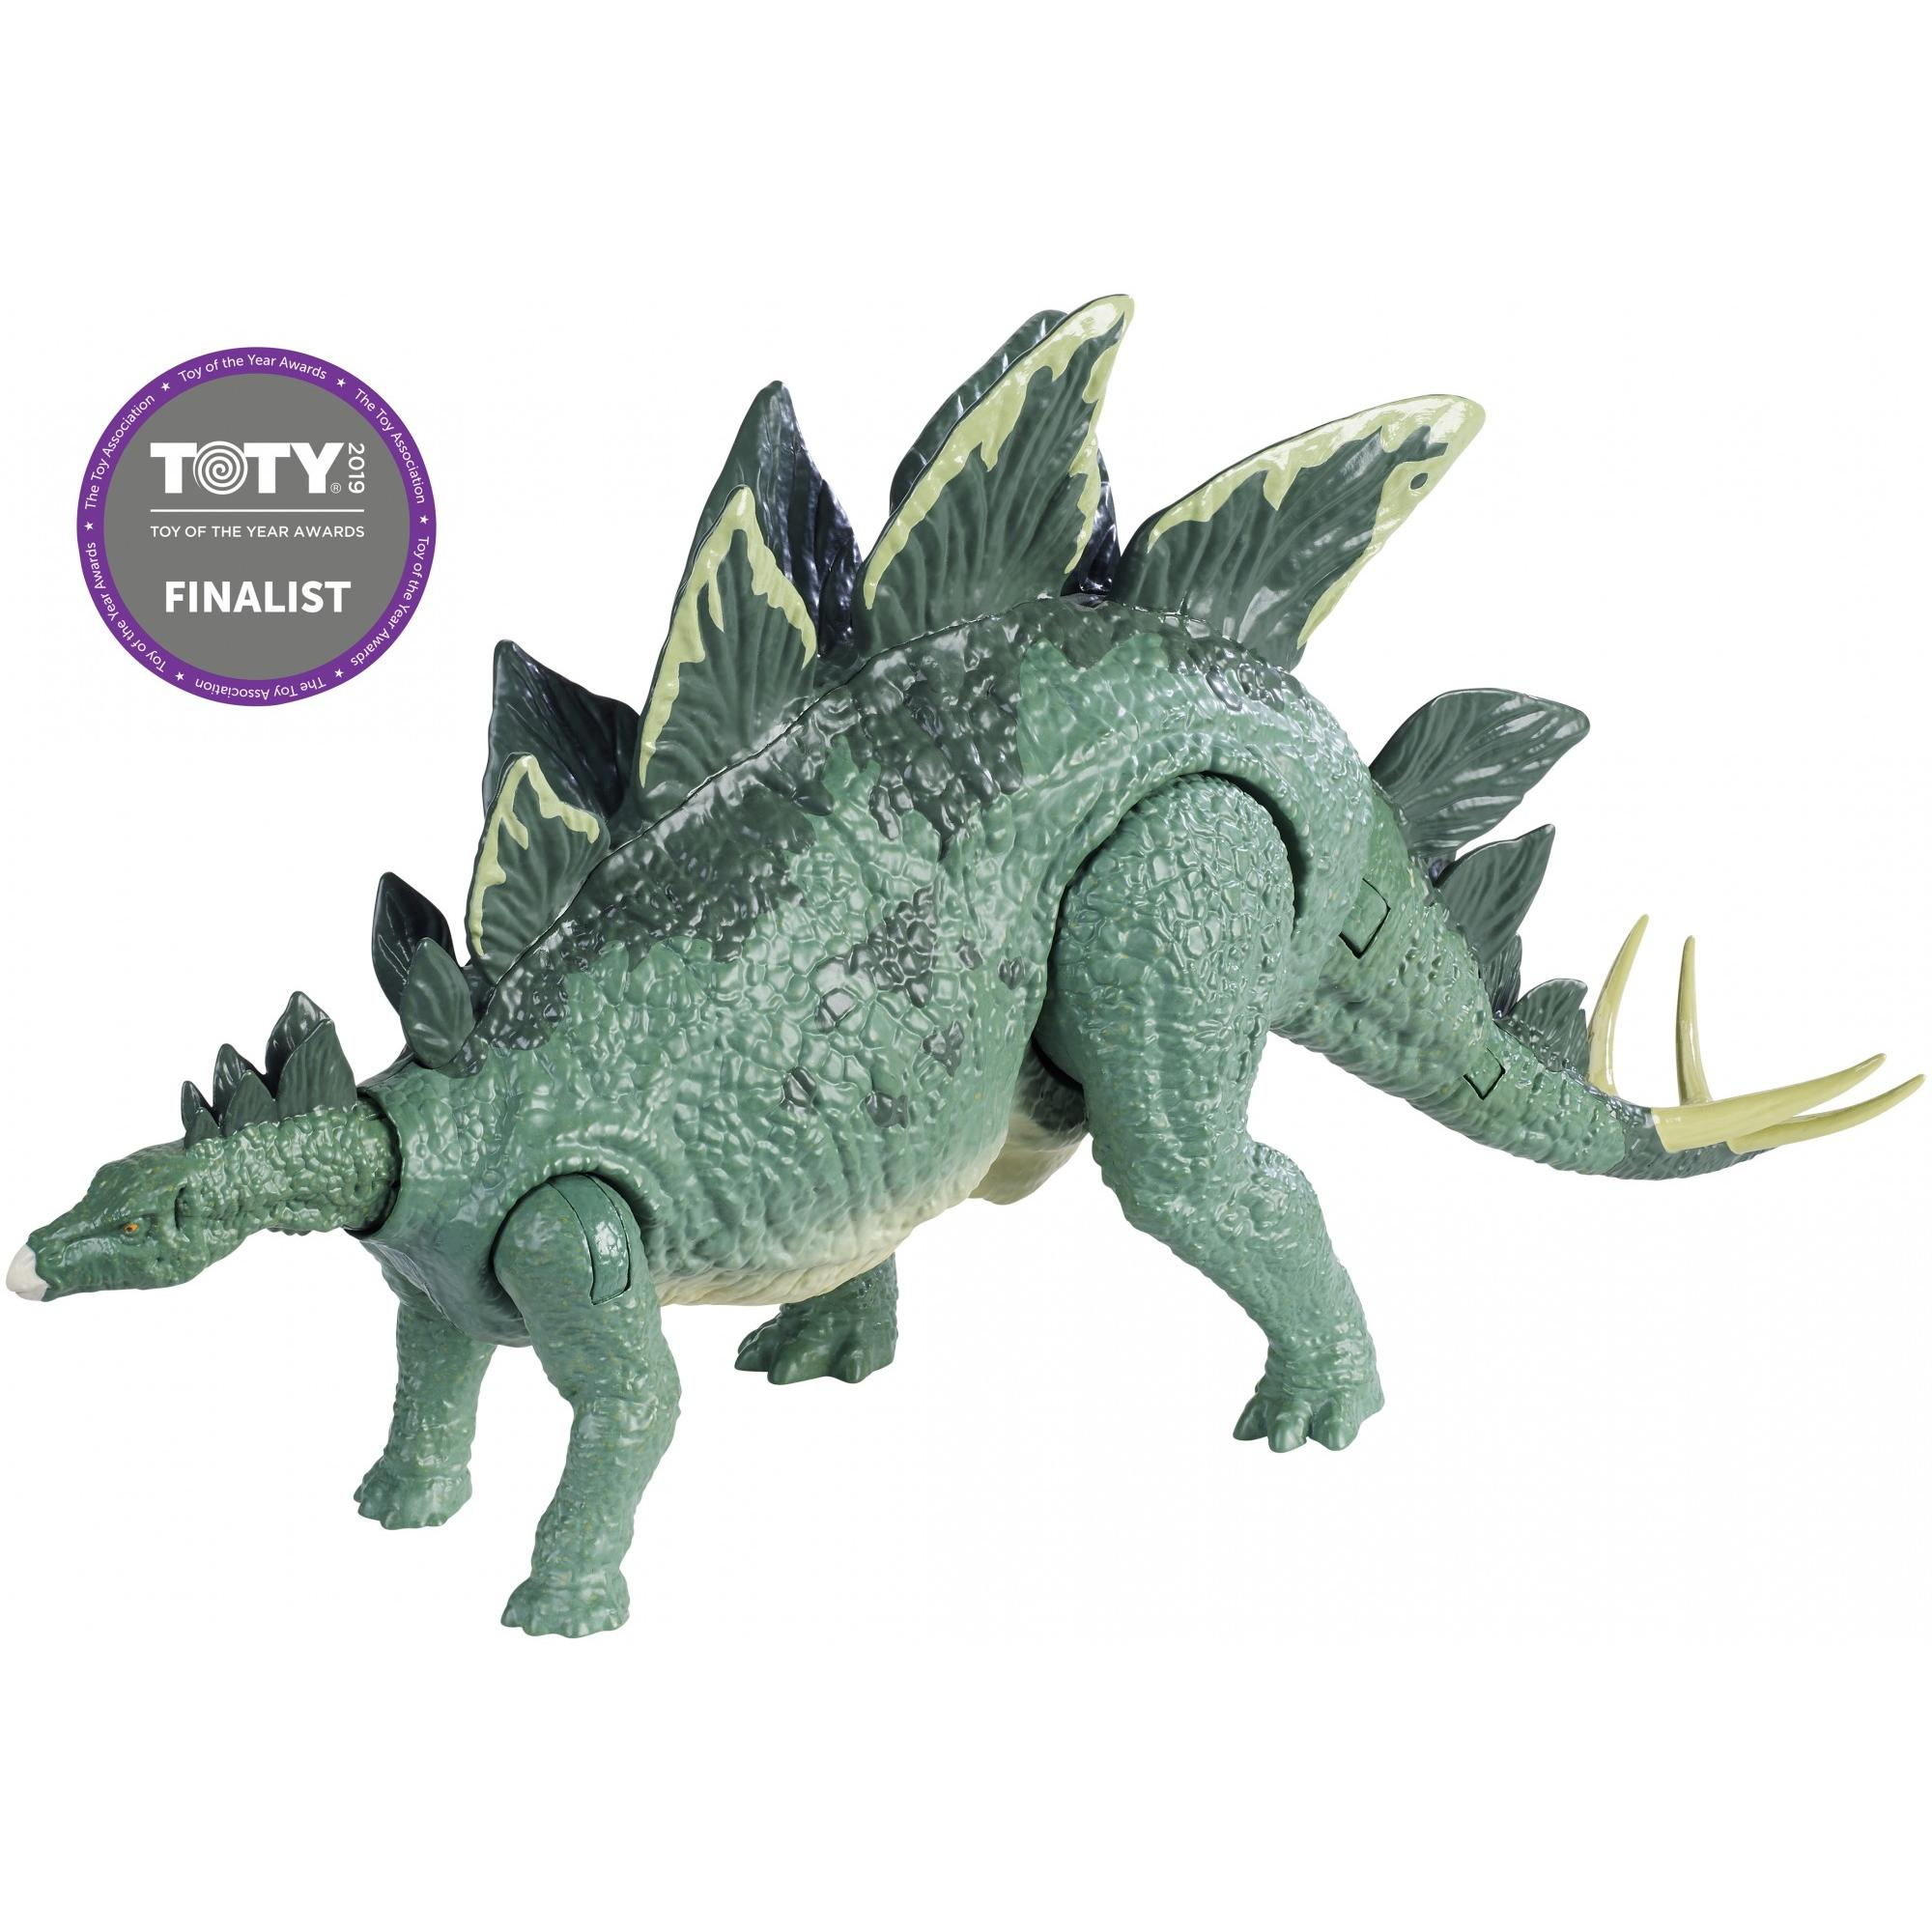 Jurassic World Action Attack Stegosaurus Dinosaur for Ages 4Y+